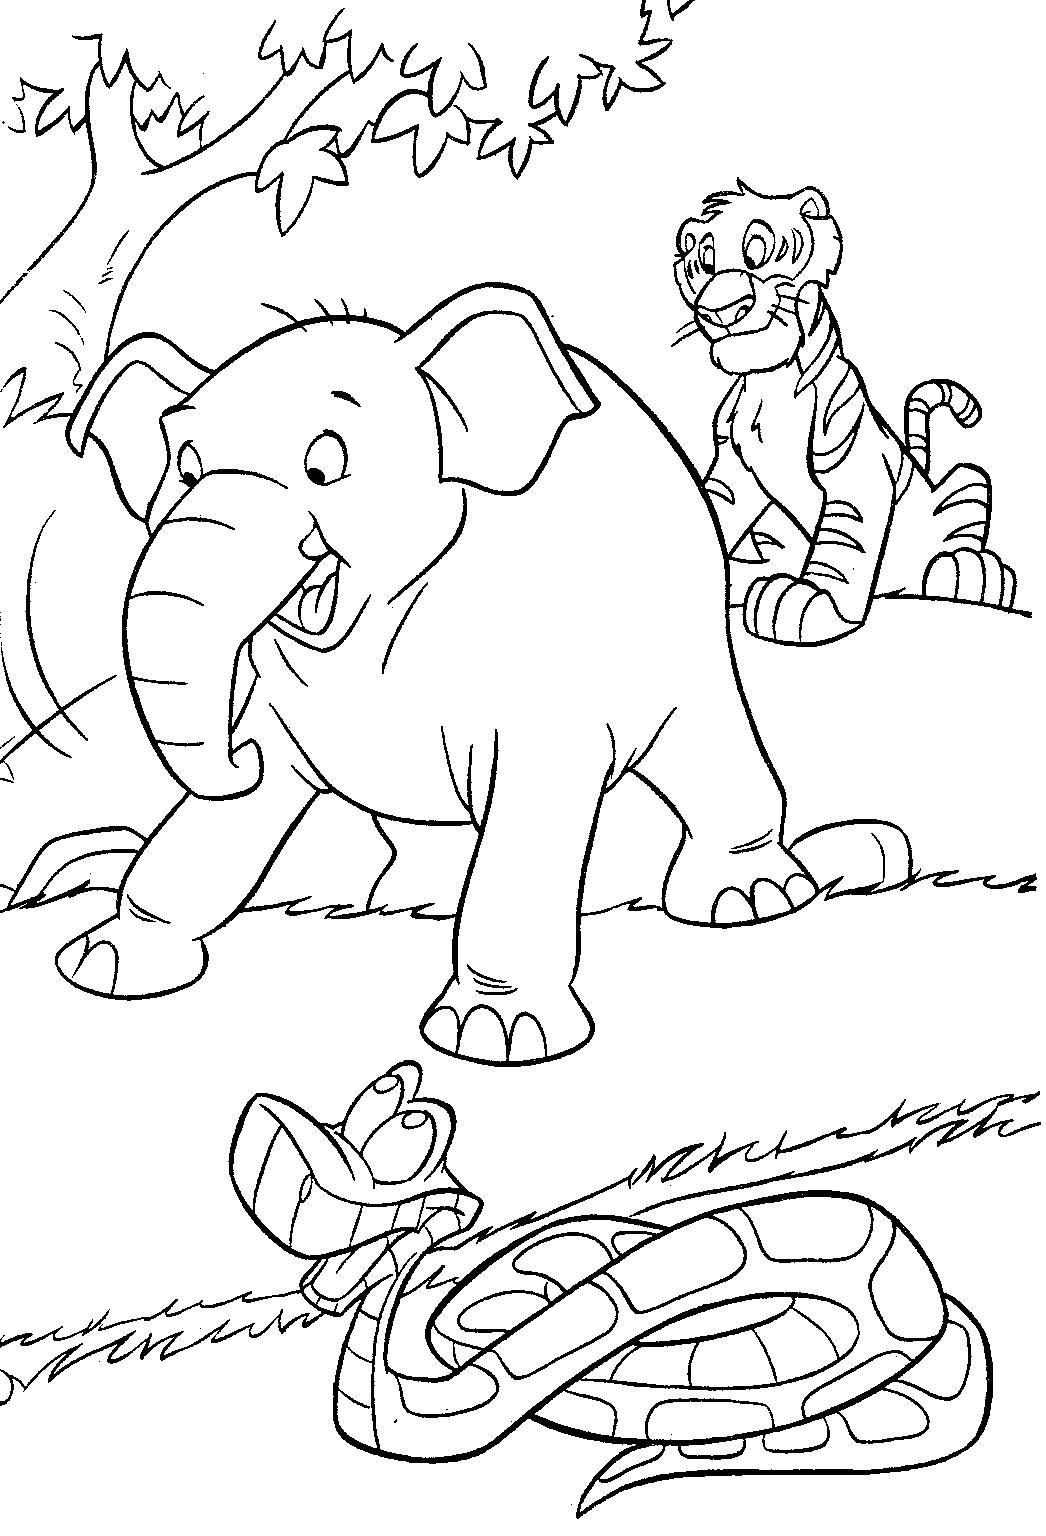 Jungle Coloring Pages - Best Coloring Pages For Kids | free printable coloring pages jungle animals